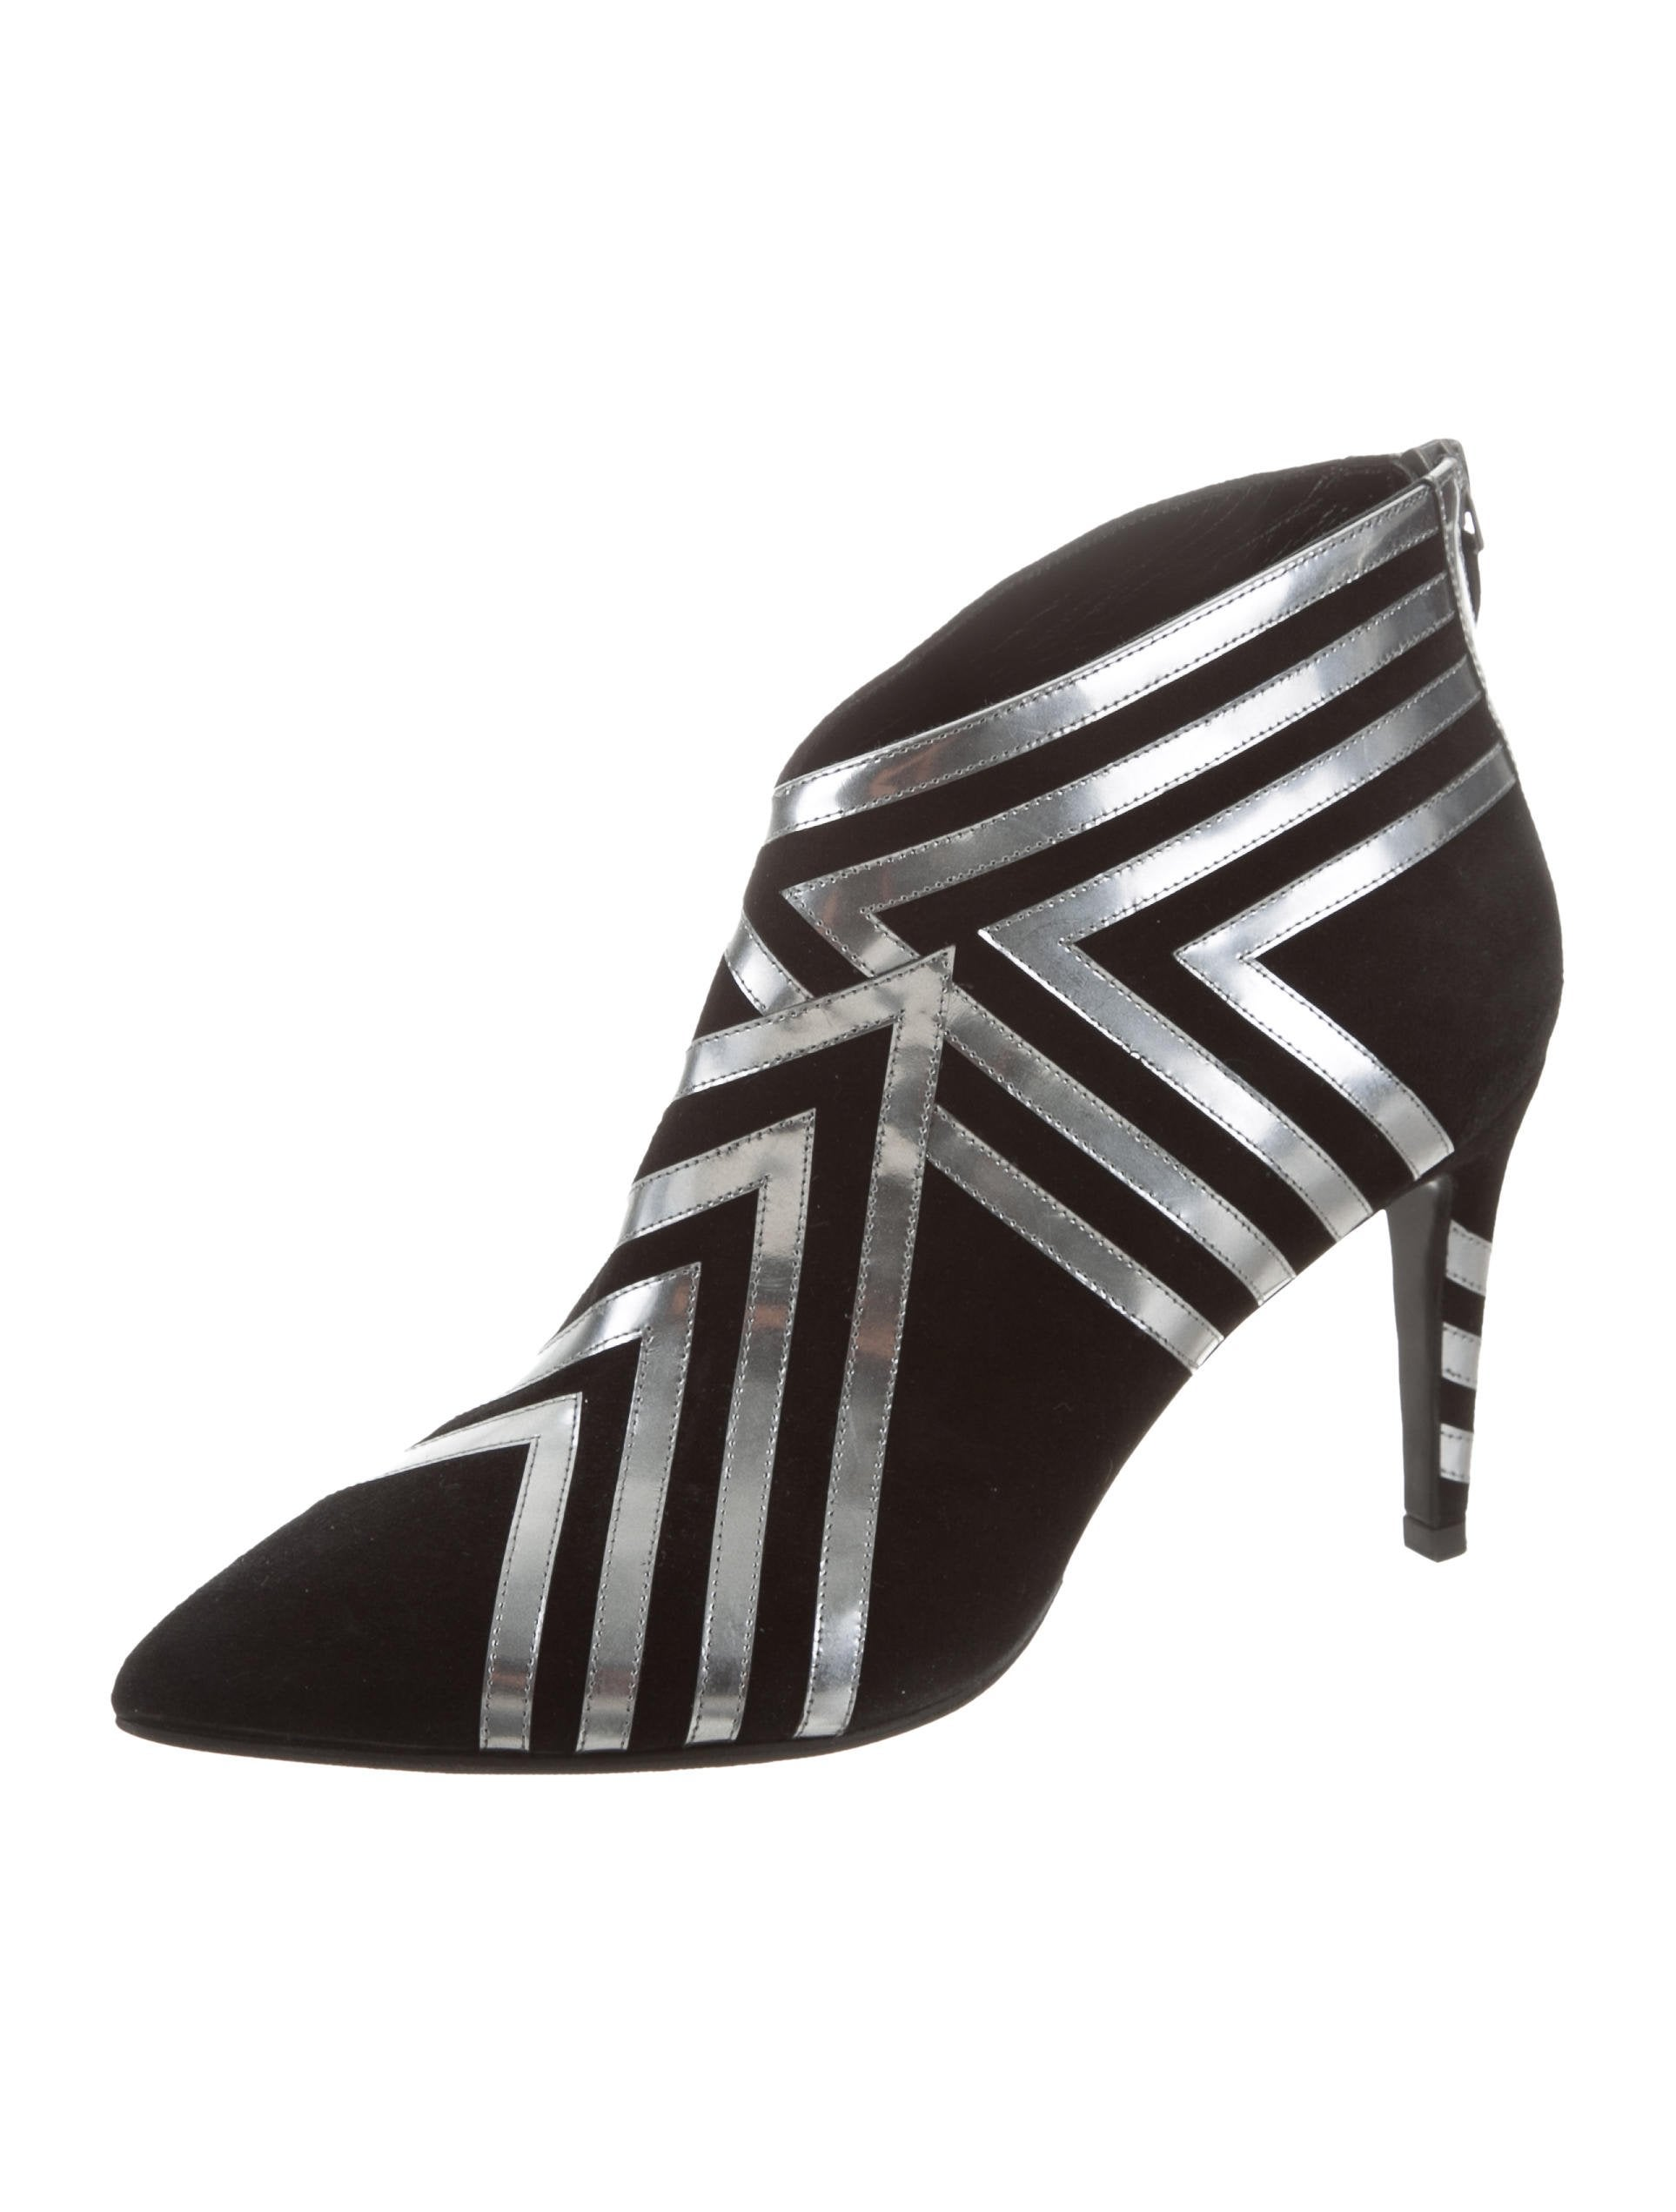 Pierre Hardy Metallic-Trimmed Ankle Boots from china cheap online outlet reliable e6K74ET